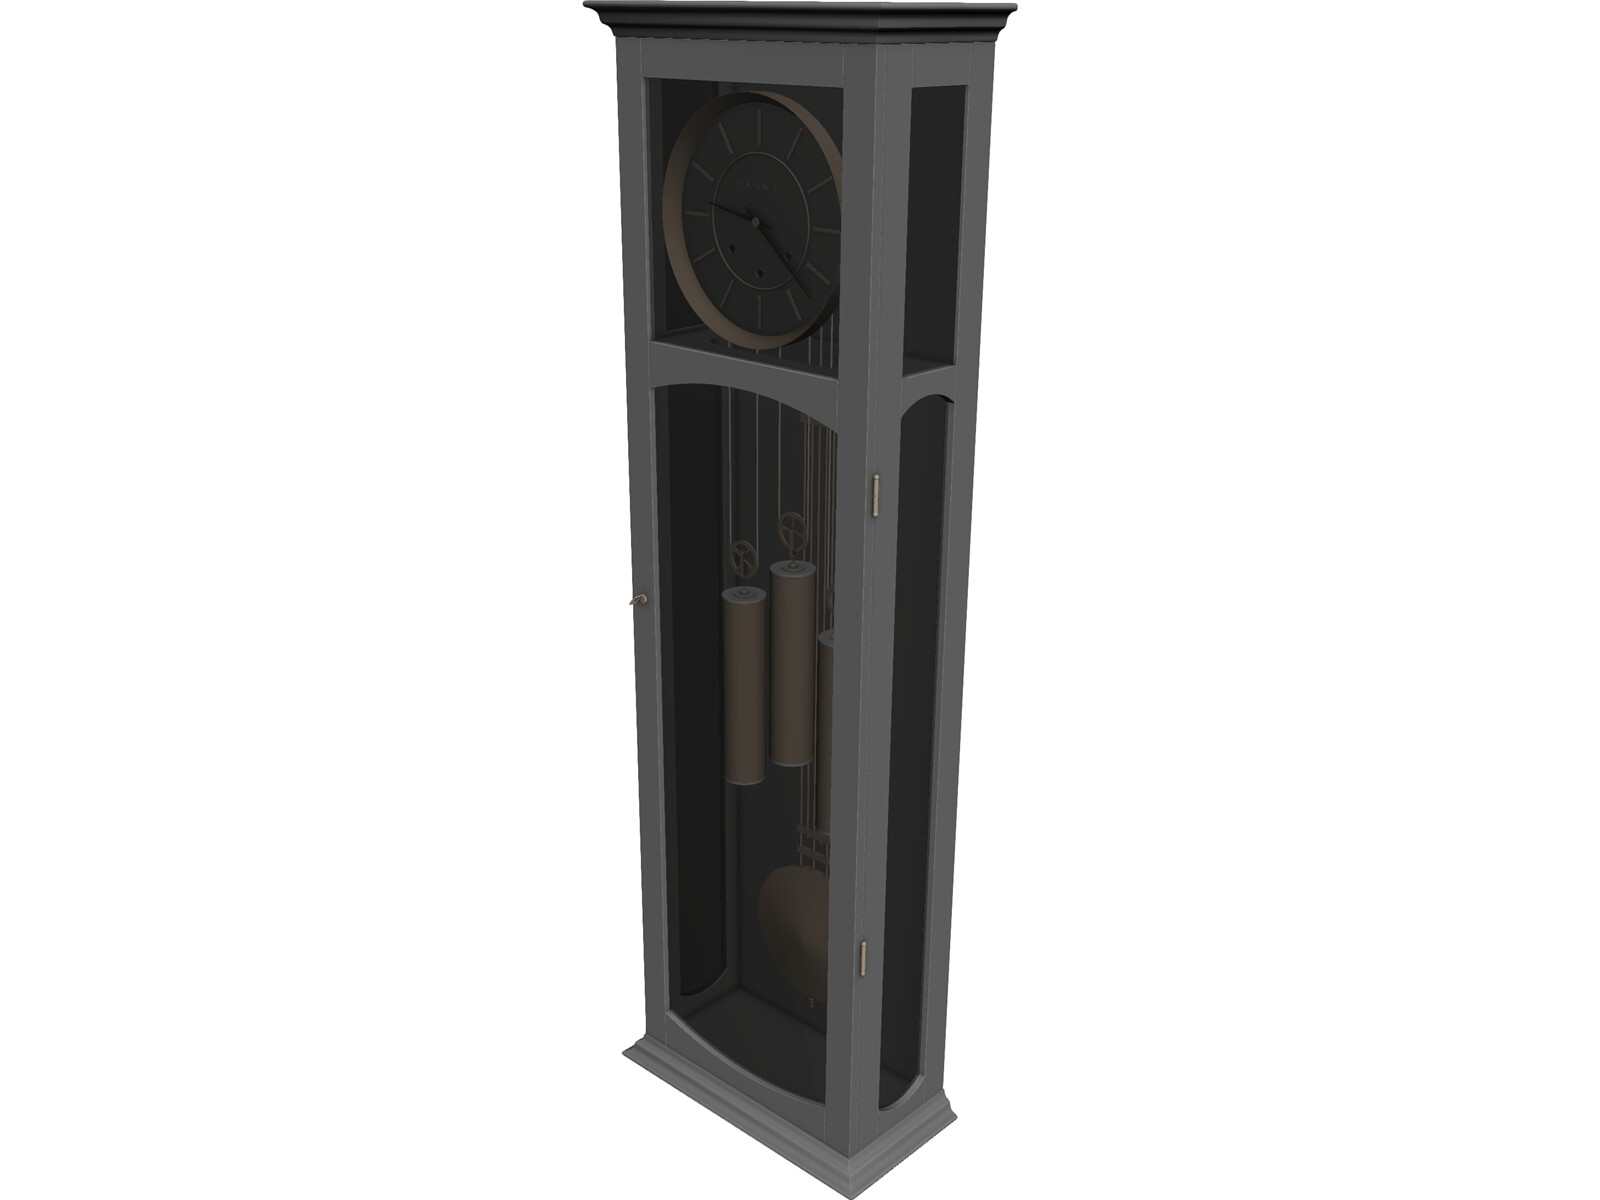 Long Case Clock 3D Model